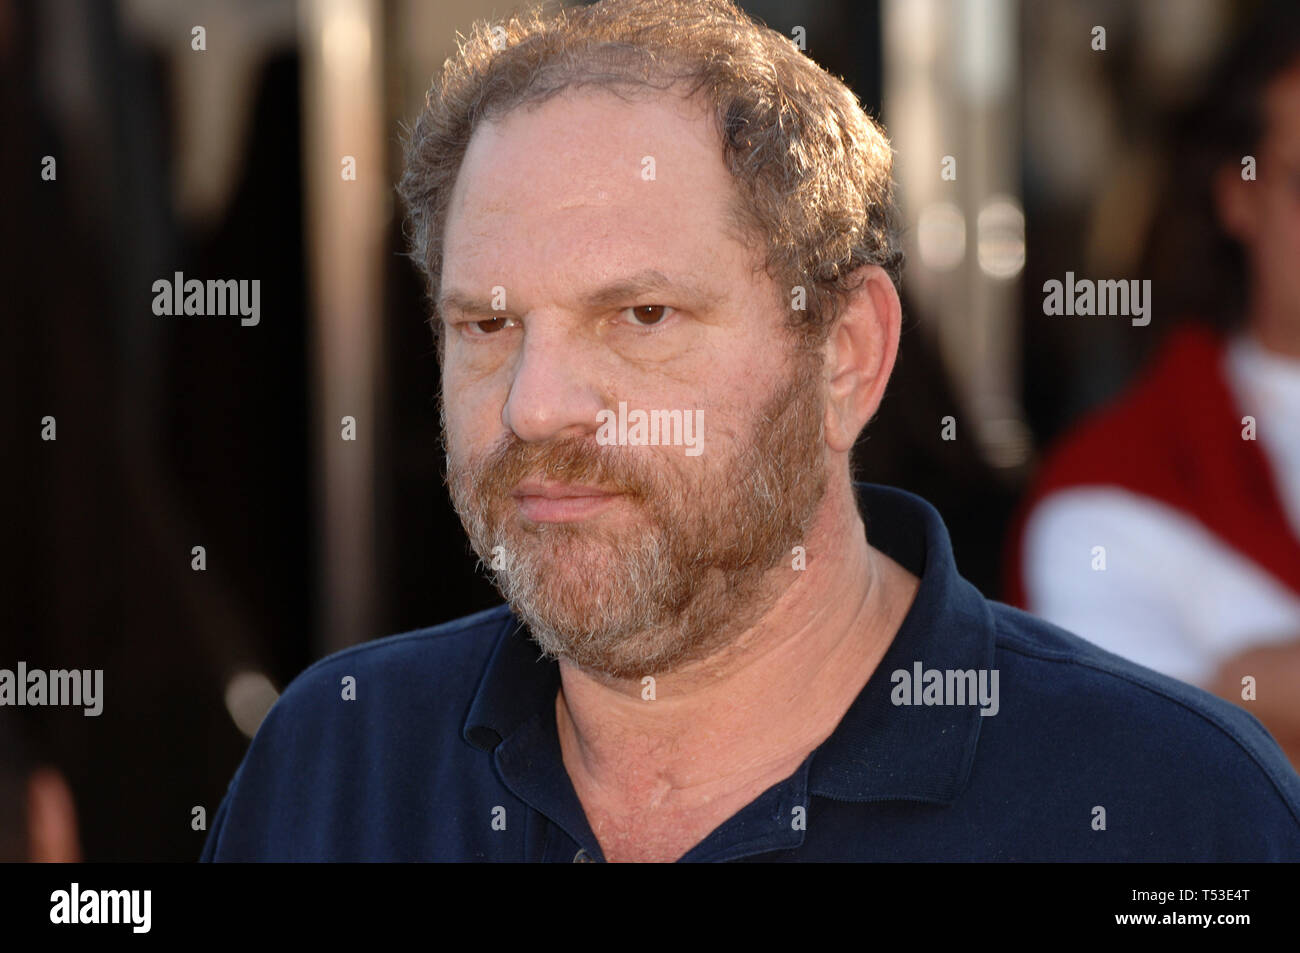 CANNES, FRANCE. May 14, 2005: Outgoing Miramax boss HARVEY WEINSTEIN at the 58th Annual Film Festival de Cannes. © 2005 Paul Smith / Featureflash - Stock Image